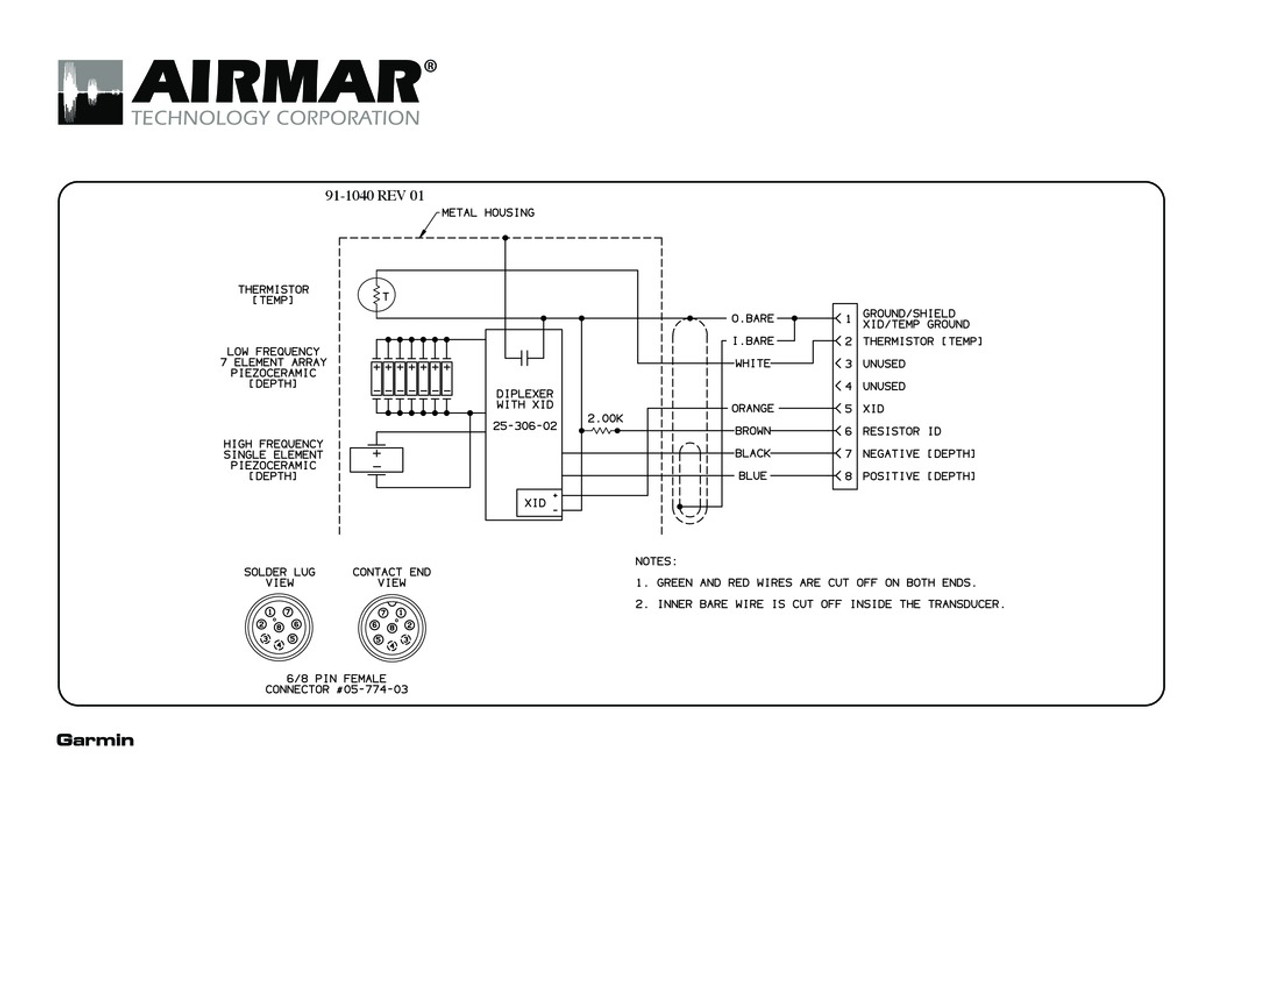 Garmin Fuel Wiring Diagram - Wiring Diagram Directory on